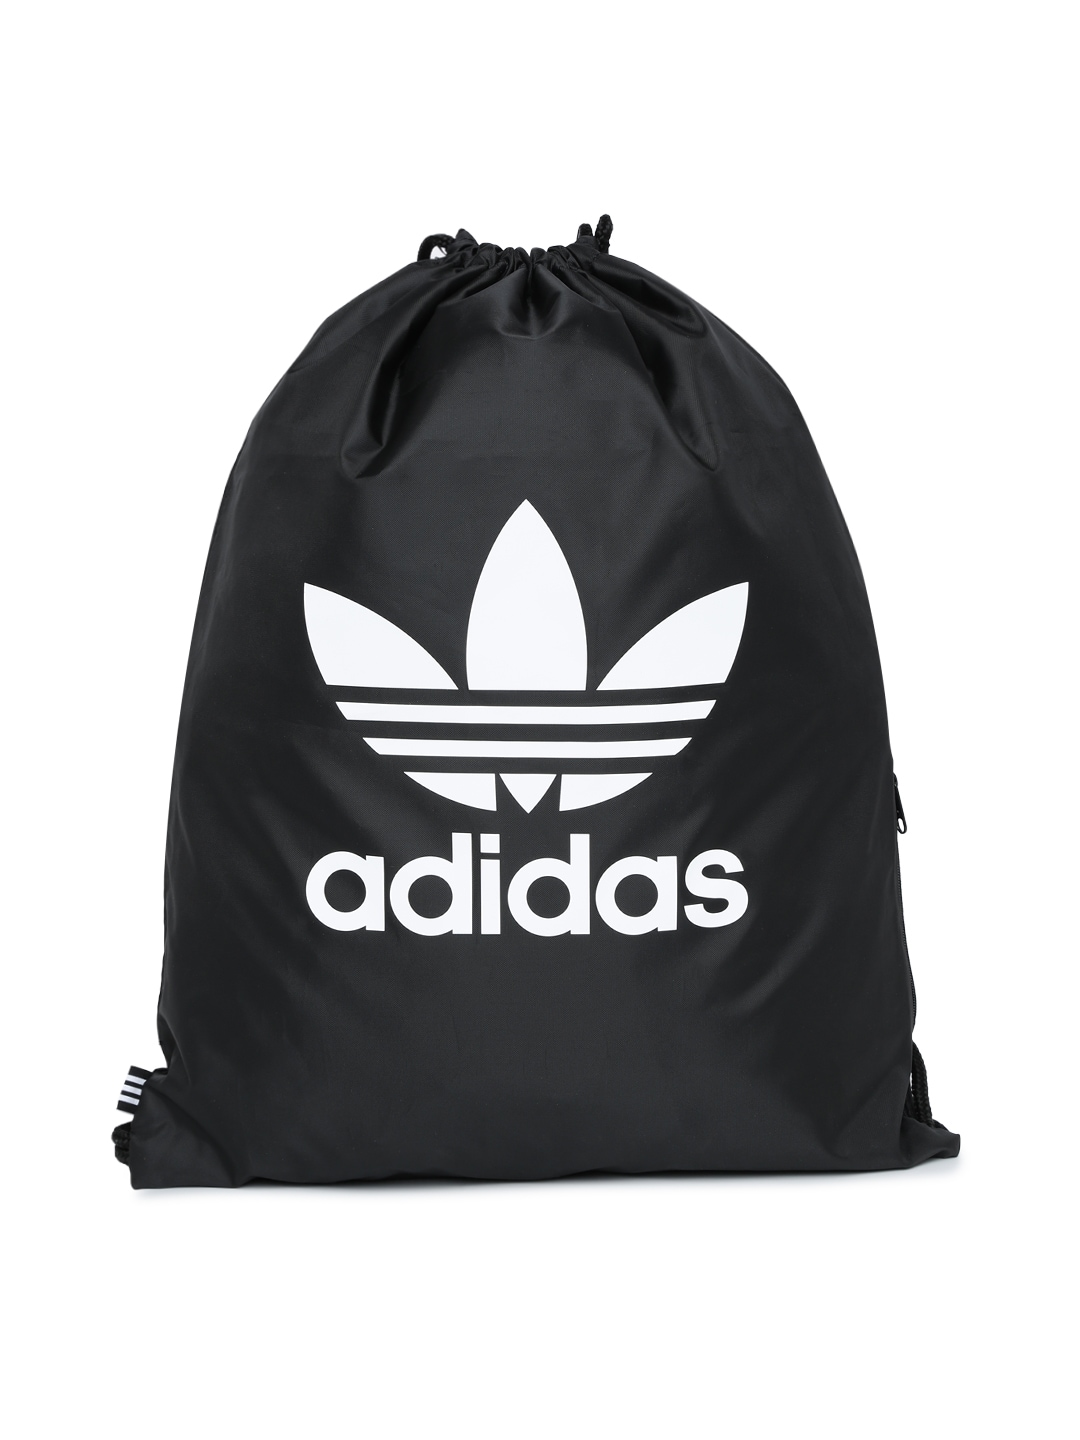 adidas - Exclusive adidas Online Store in India at Myntra 11de73f5c60d2